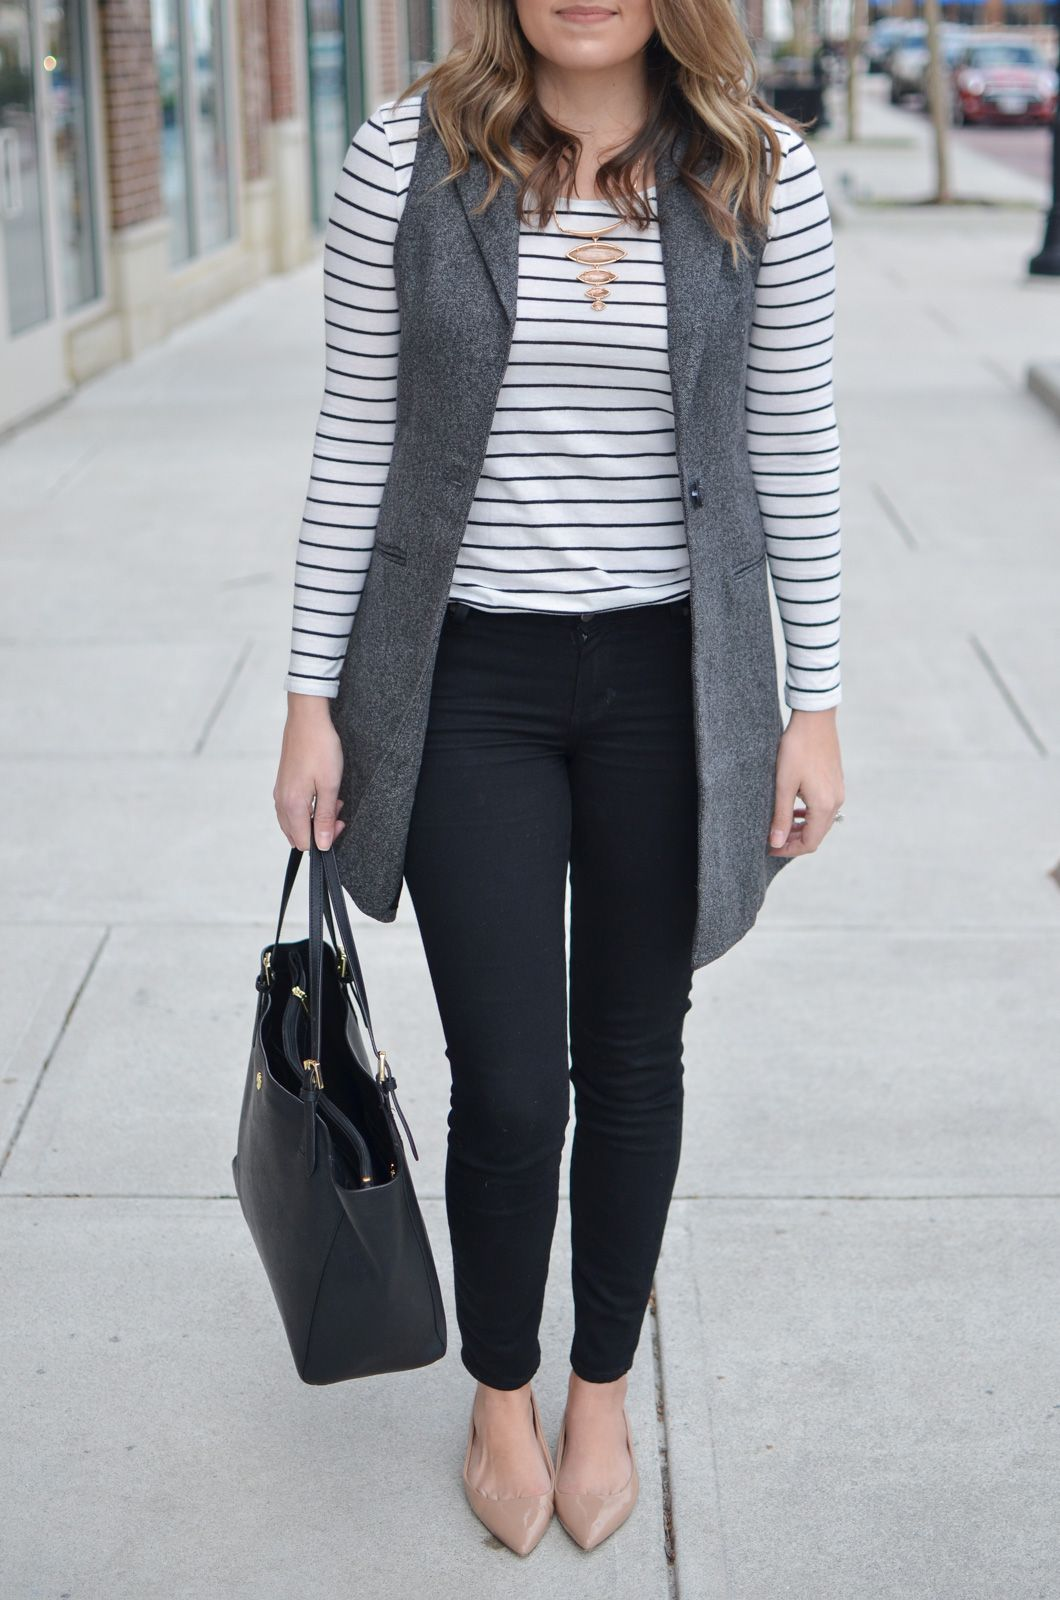 Long Gray Vest Outfit | Vest outfits for women, Outfits with